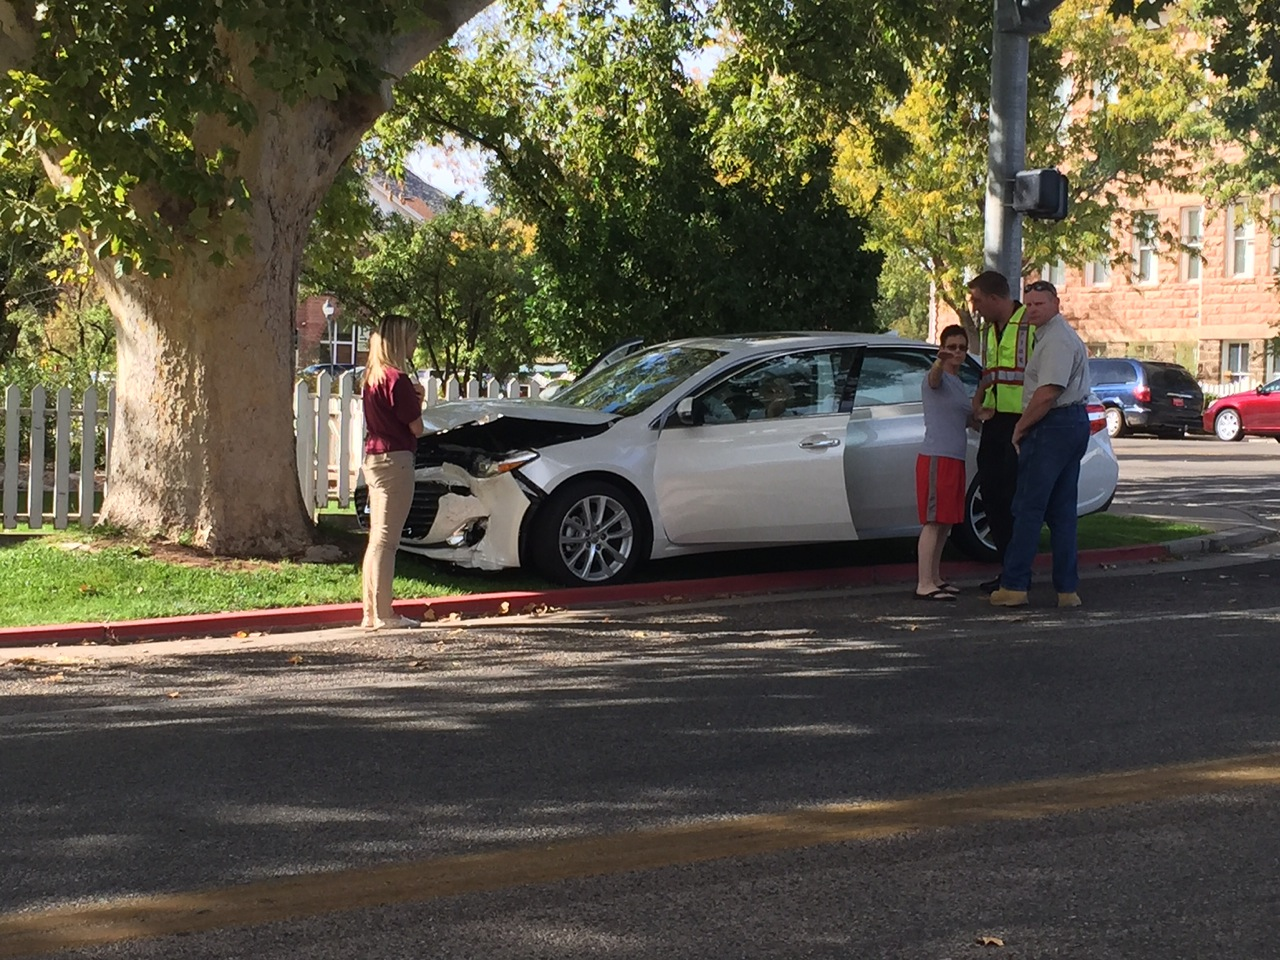 Aftermath of a two-car collision at Main Street and 100 South, St. George, Utah, Oct. 21, 2014   Photos courtesy of Corbin Wade, St. George News